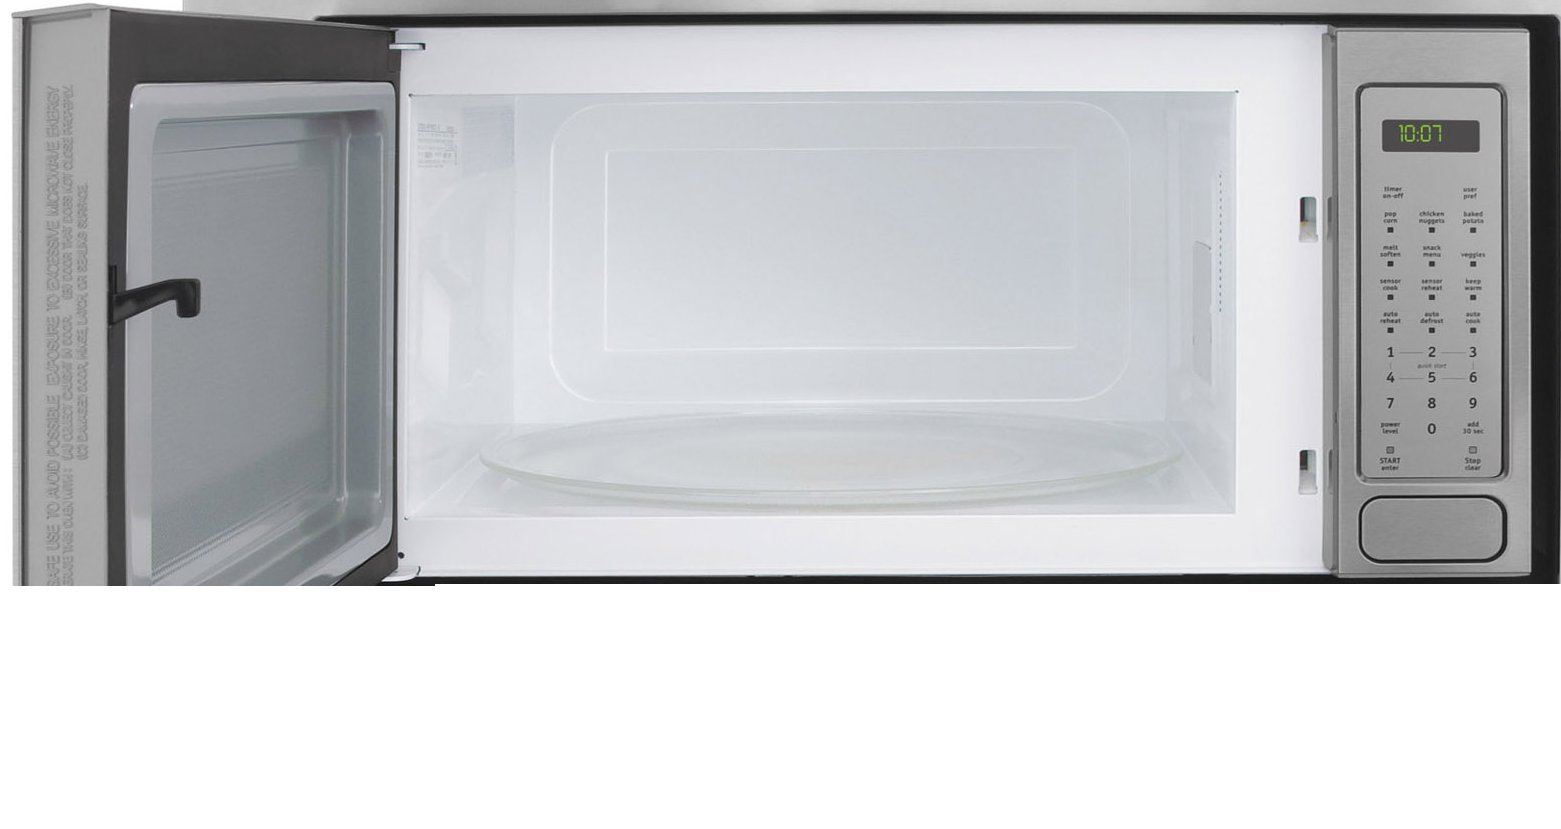 FPMO209KF Professional Series 2.0 cu. ft. Countertop Microwave Oven with 1200 Cooking Watts 3 Auto Cook Options Sensor Cook 7 User Preference Options and One-Touch Options Stainless